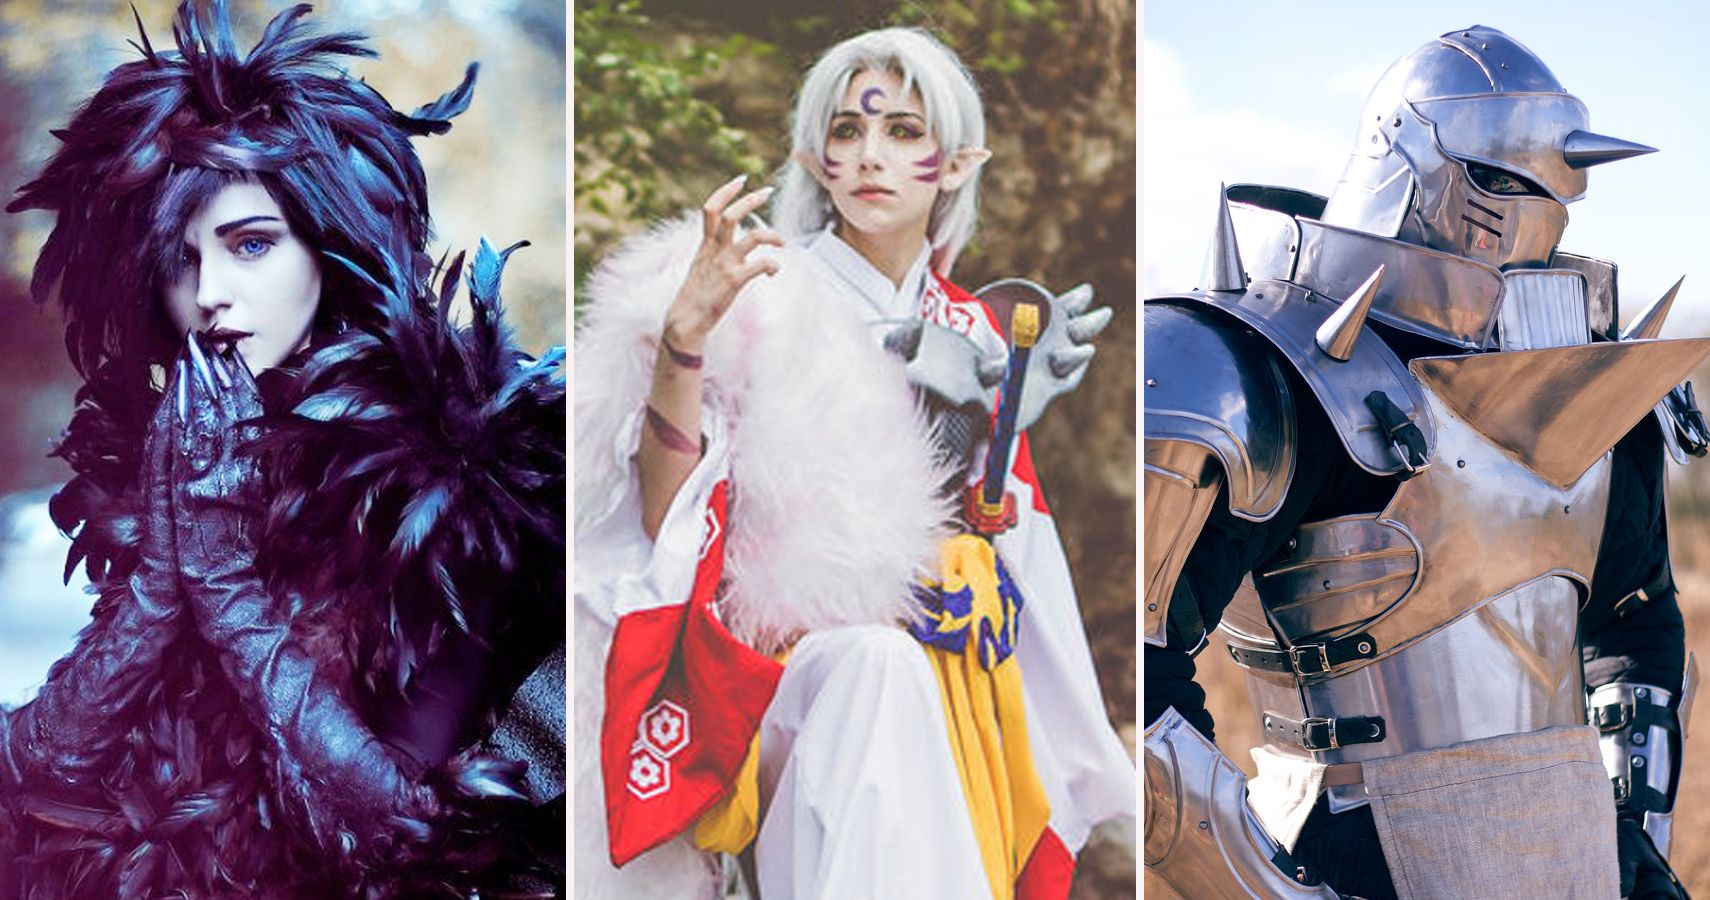 25 anime characters that are impossible to cosplay but fans still pulled off